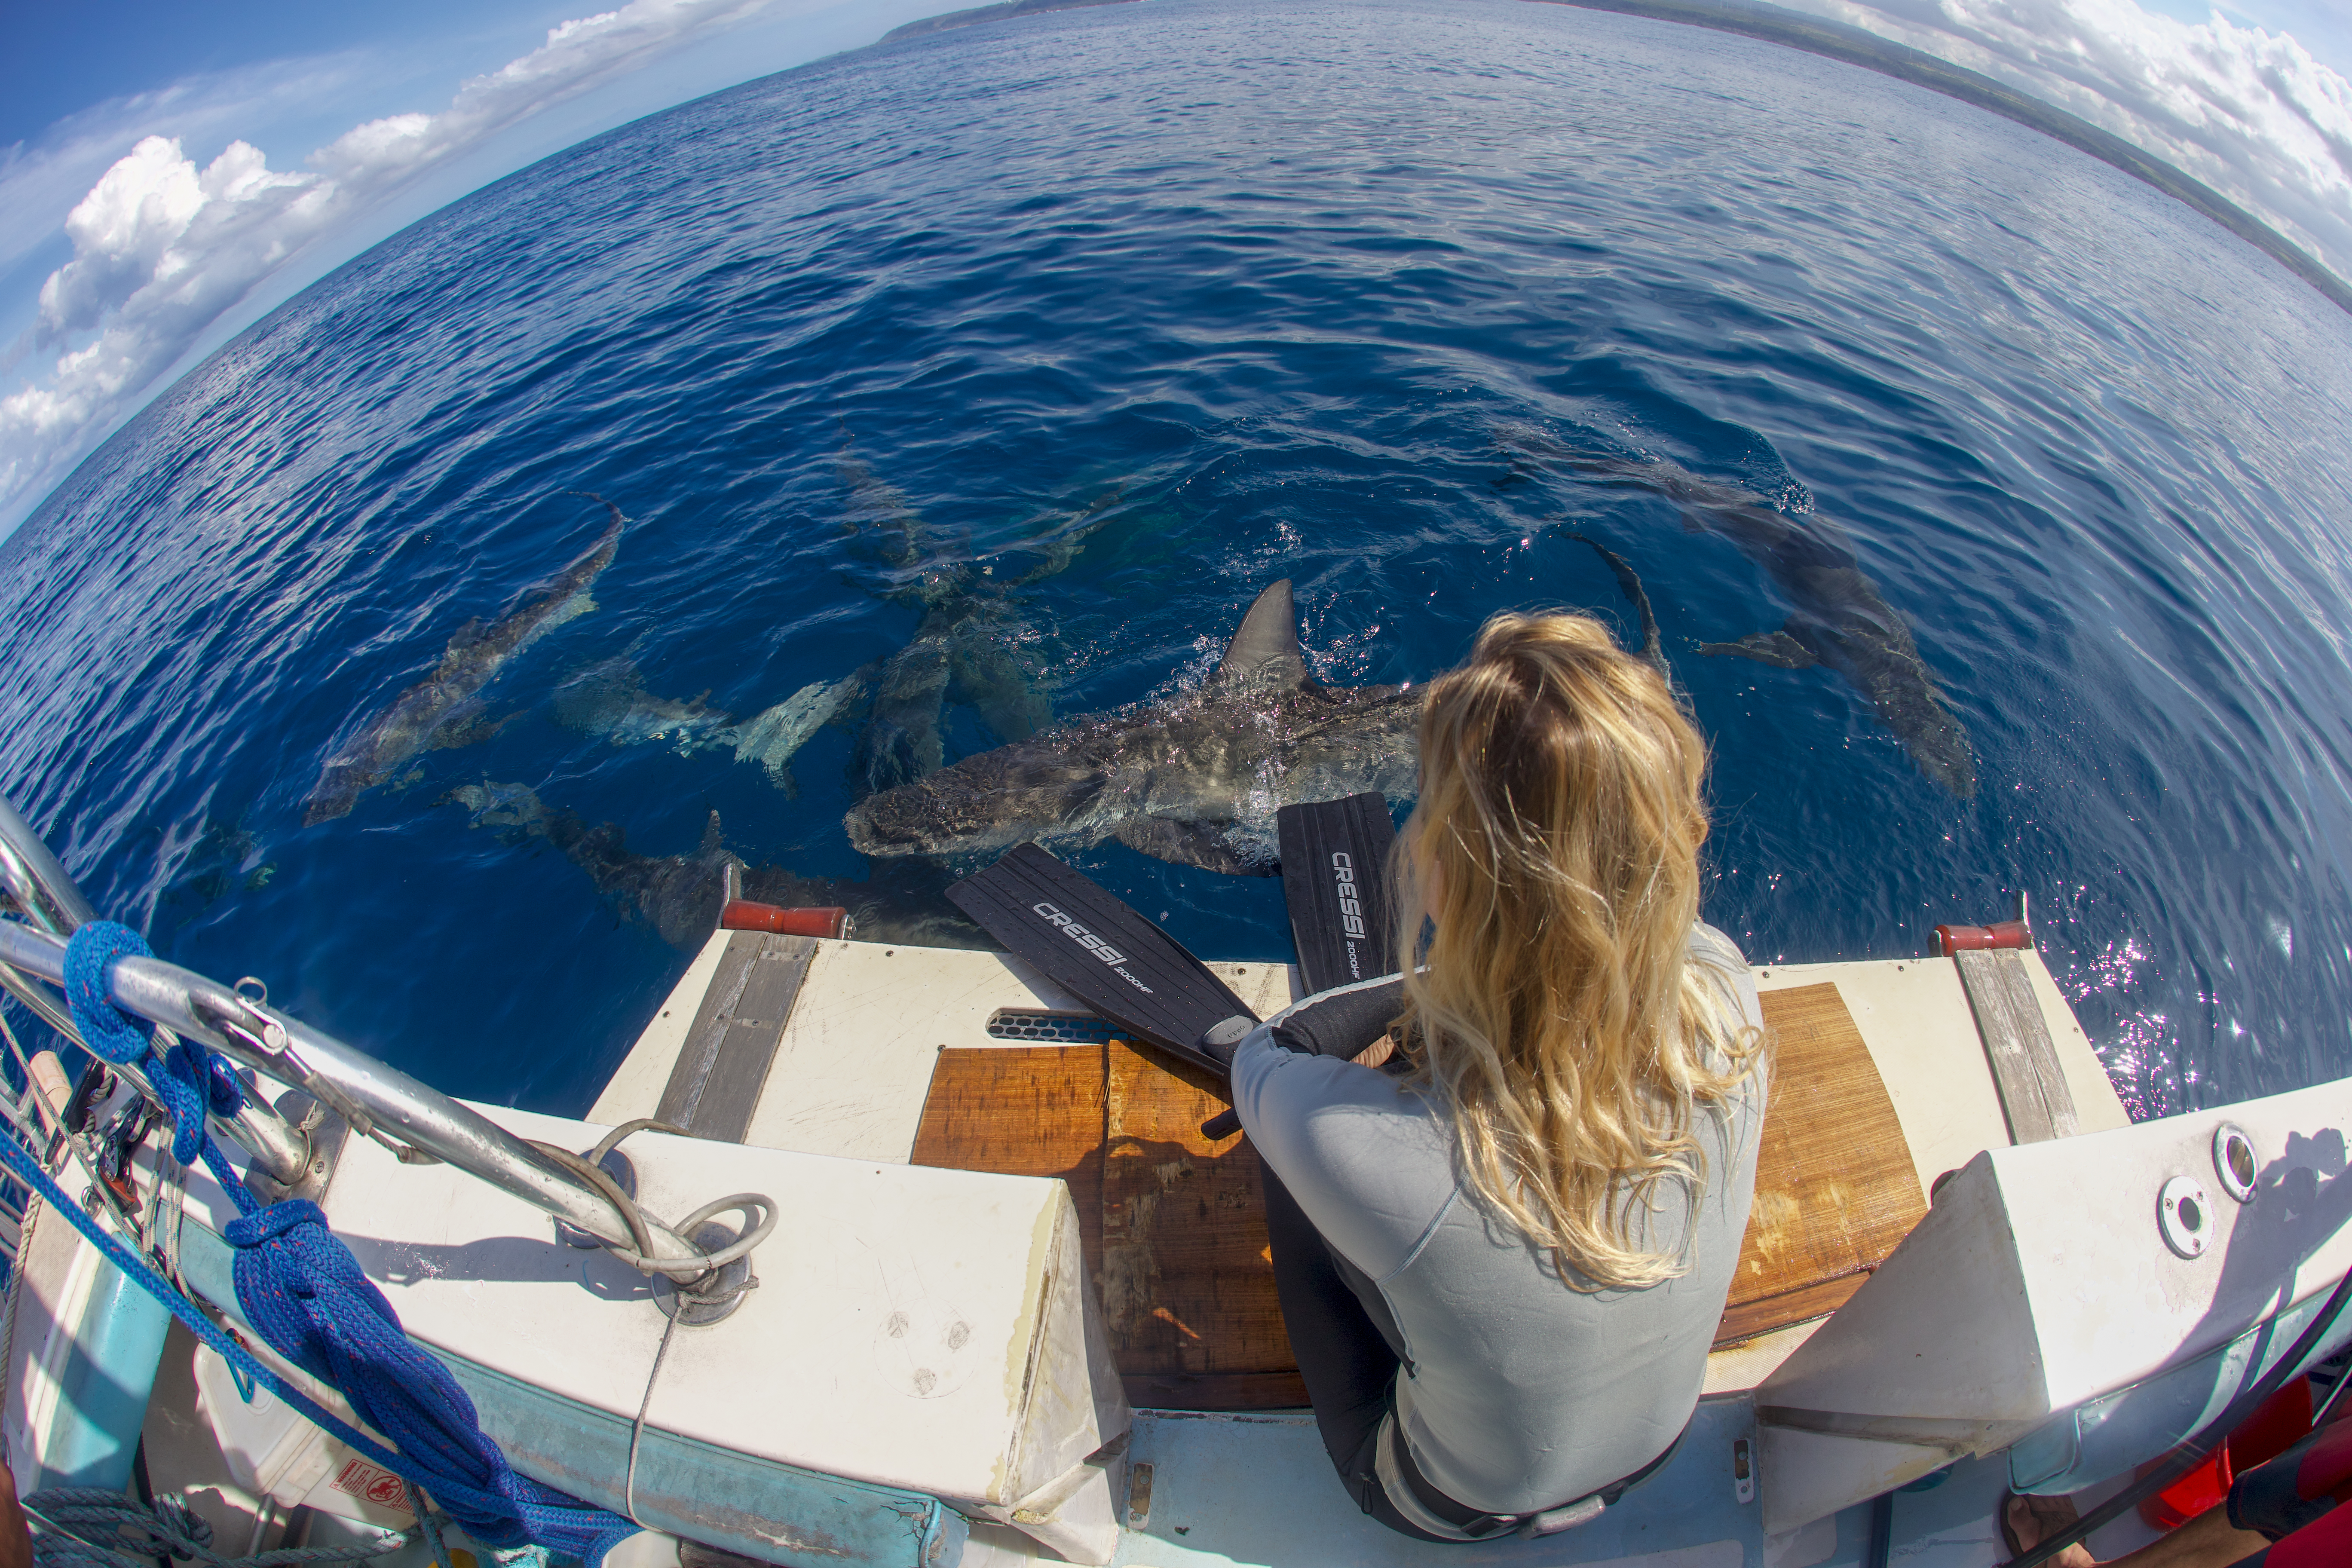 Woman sitting on edge of boat looking at sharks in water